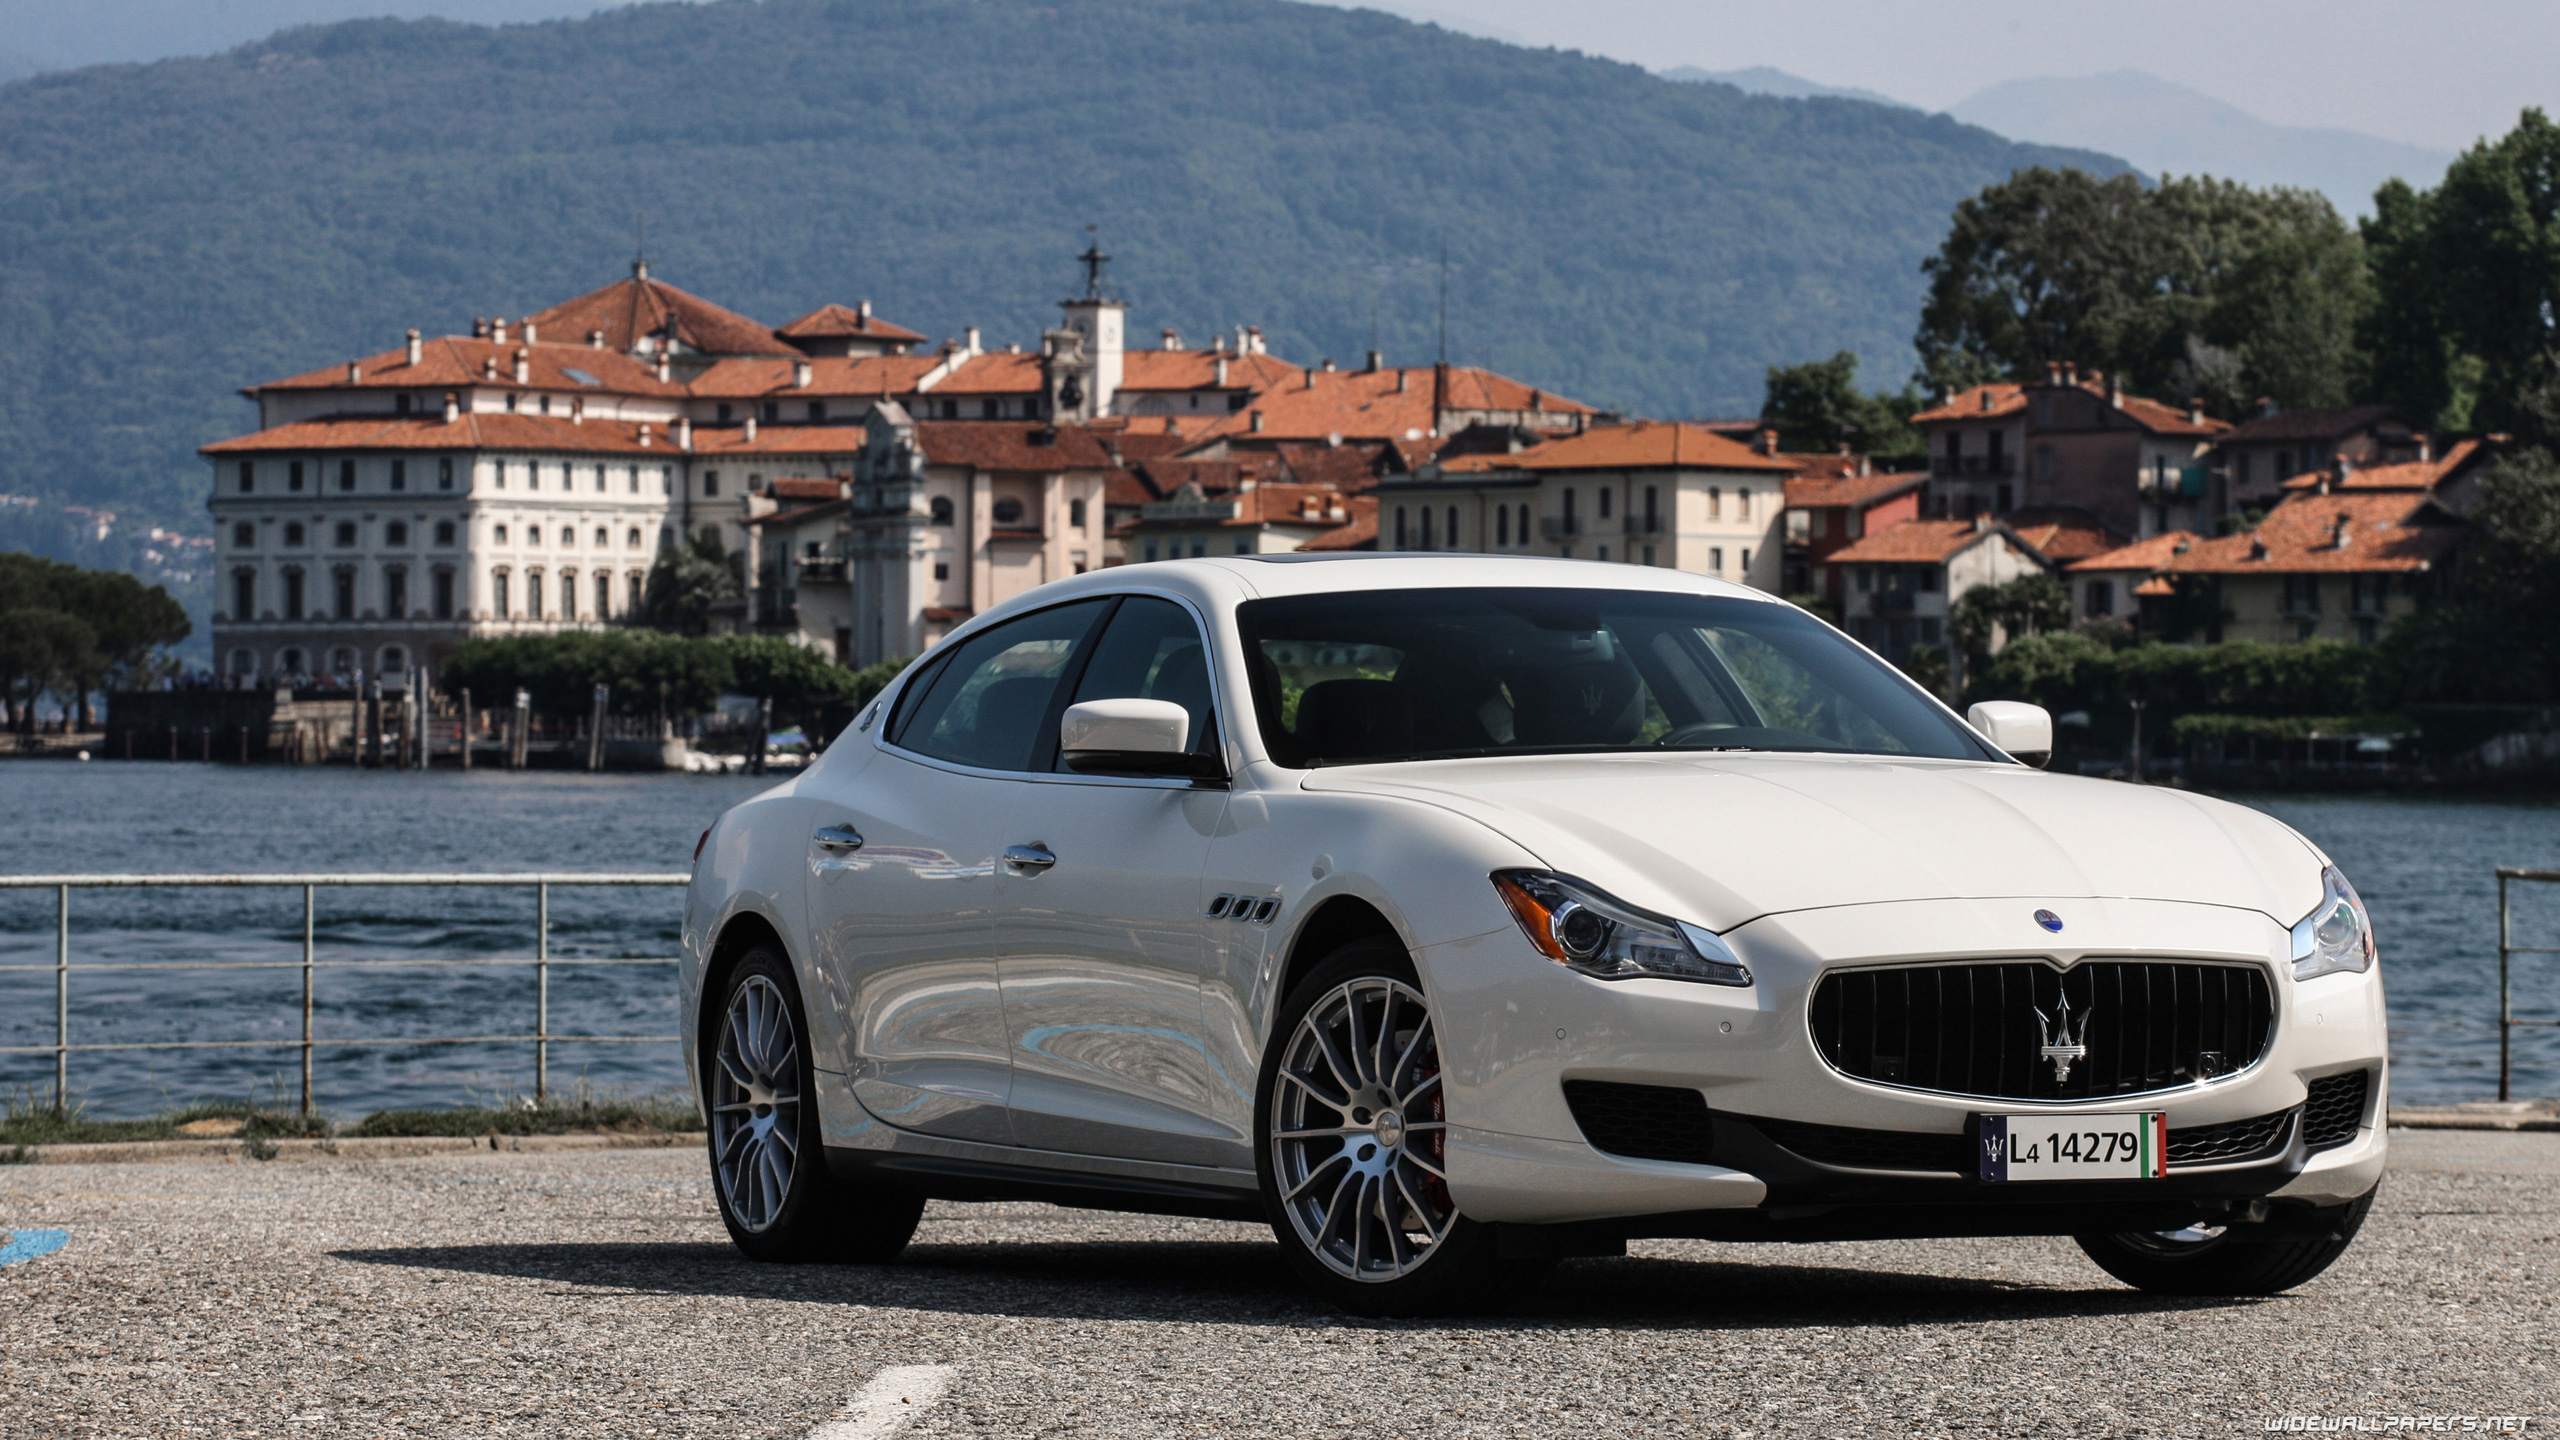 maserati quattroporte cars desktop wallpapers 4k ultra hd page 3. Black Bedroom Furniture Sets. Home Design Ideas